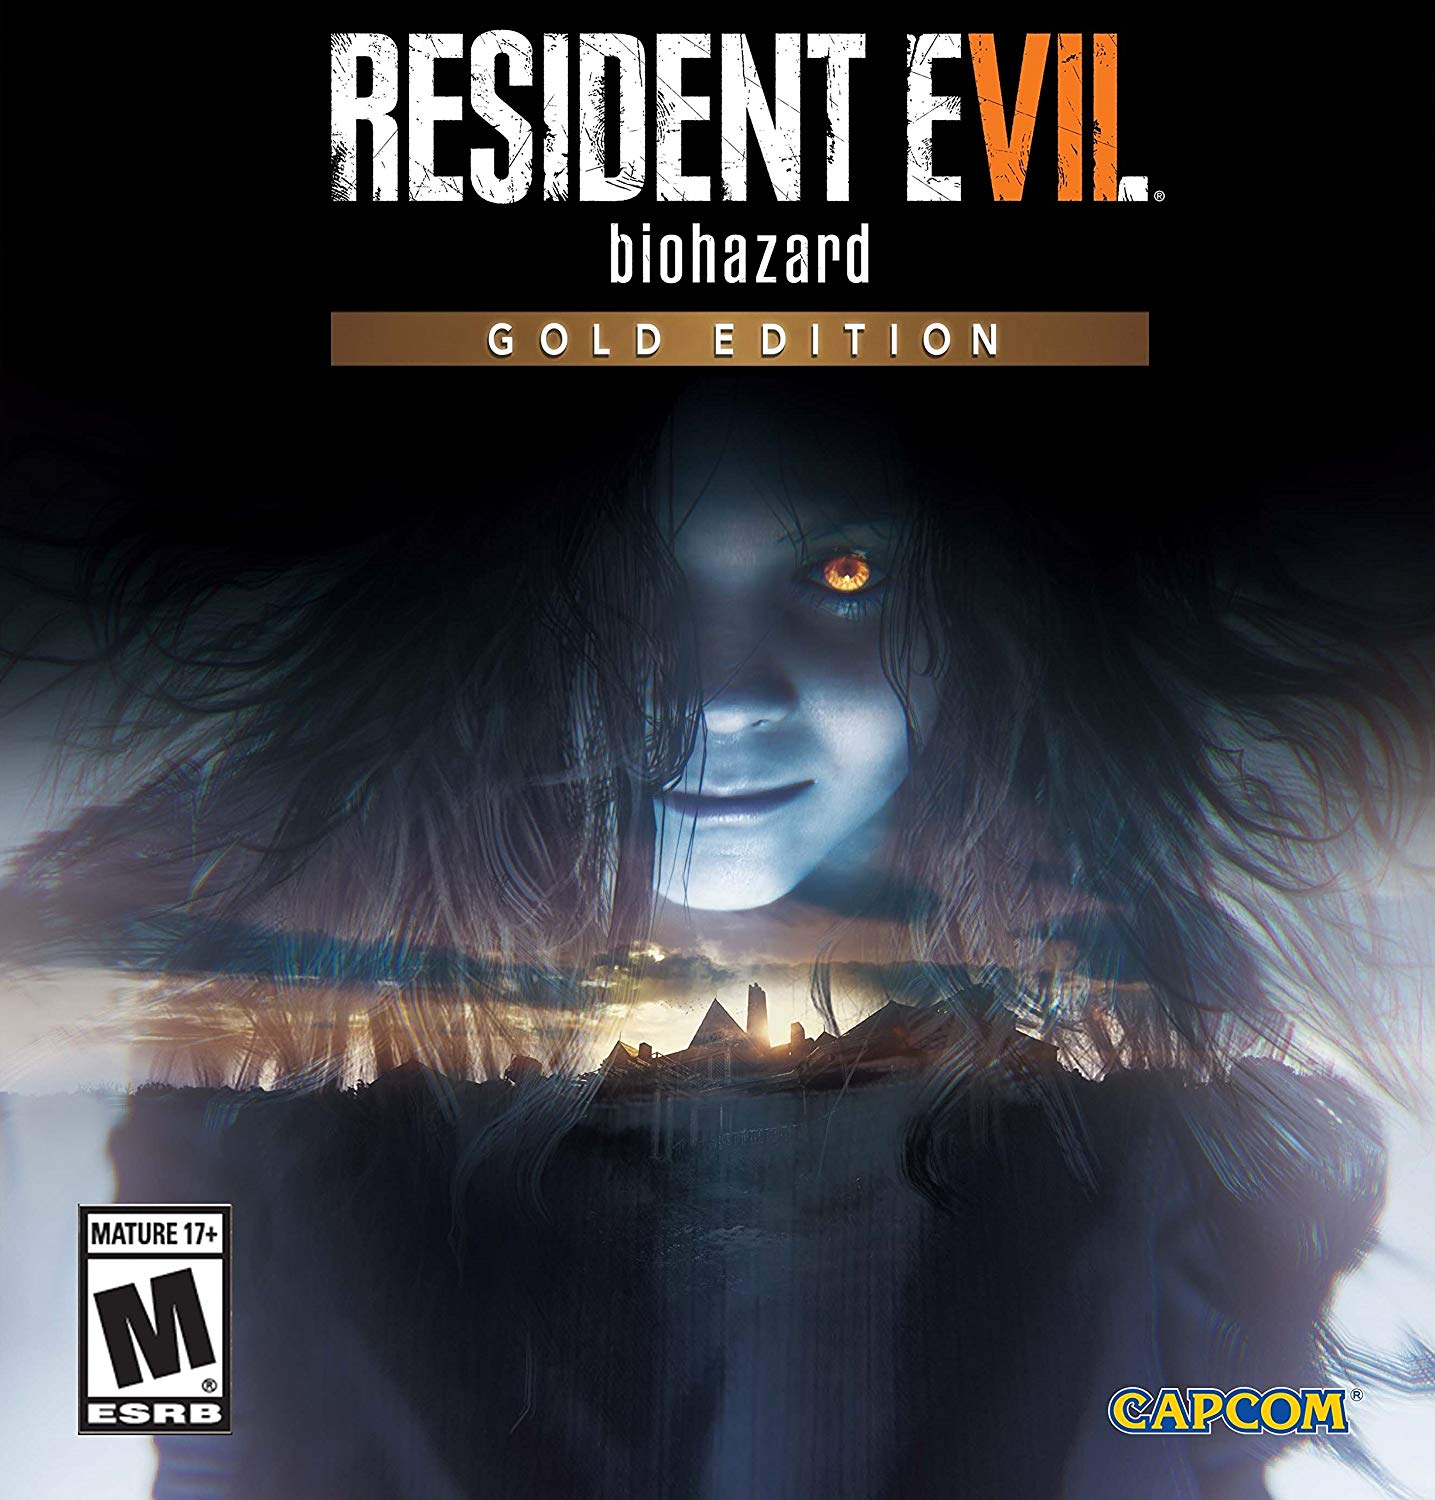 Poster for Resident Evil 7: Biohazard - Gold Edition